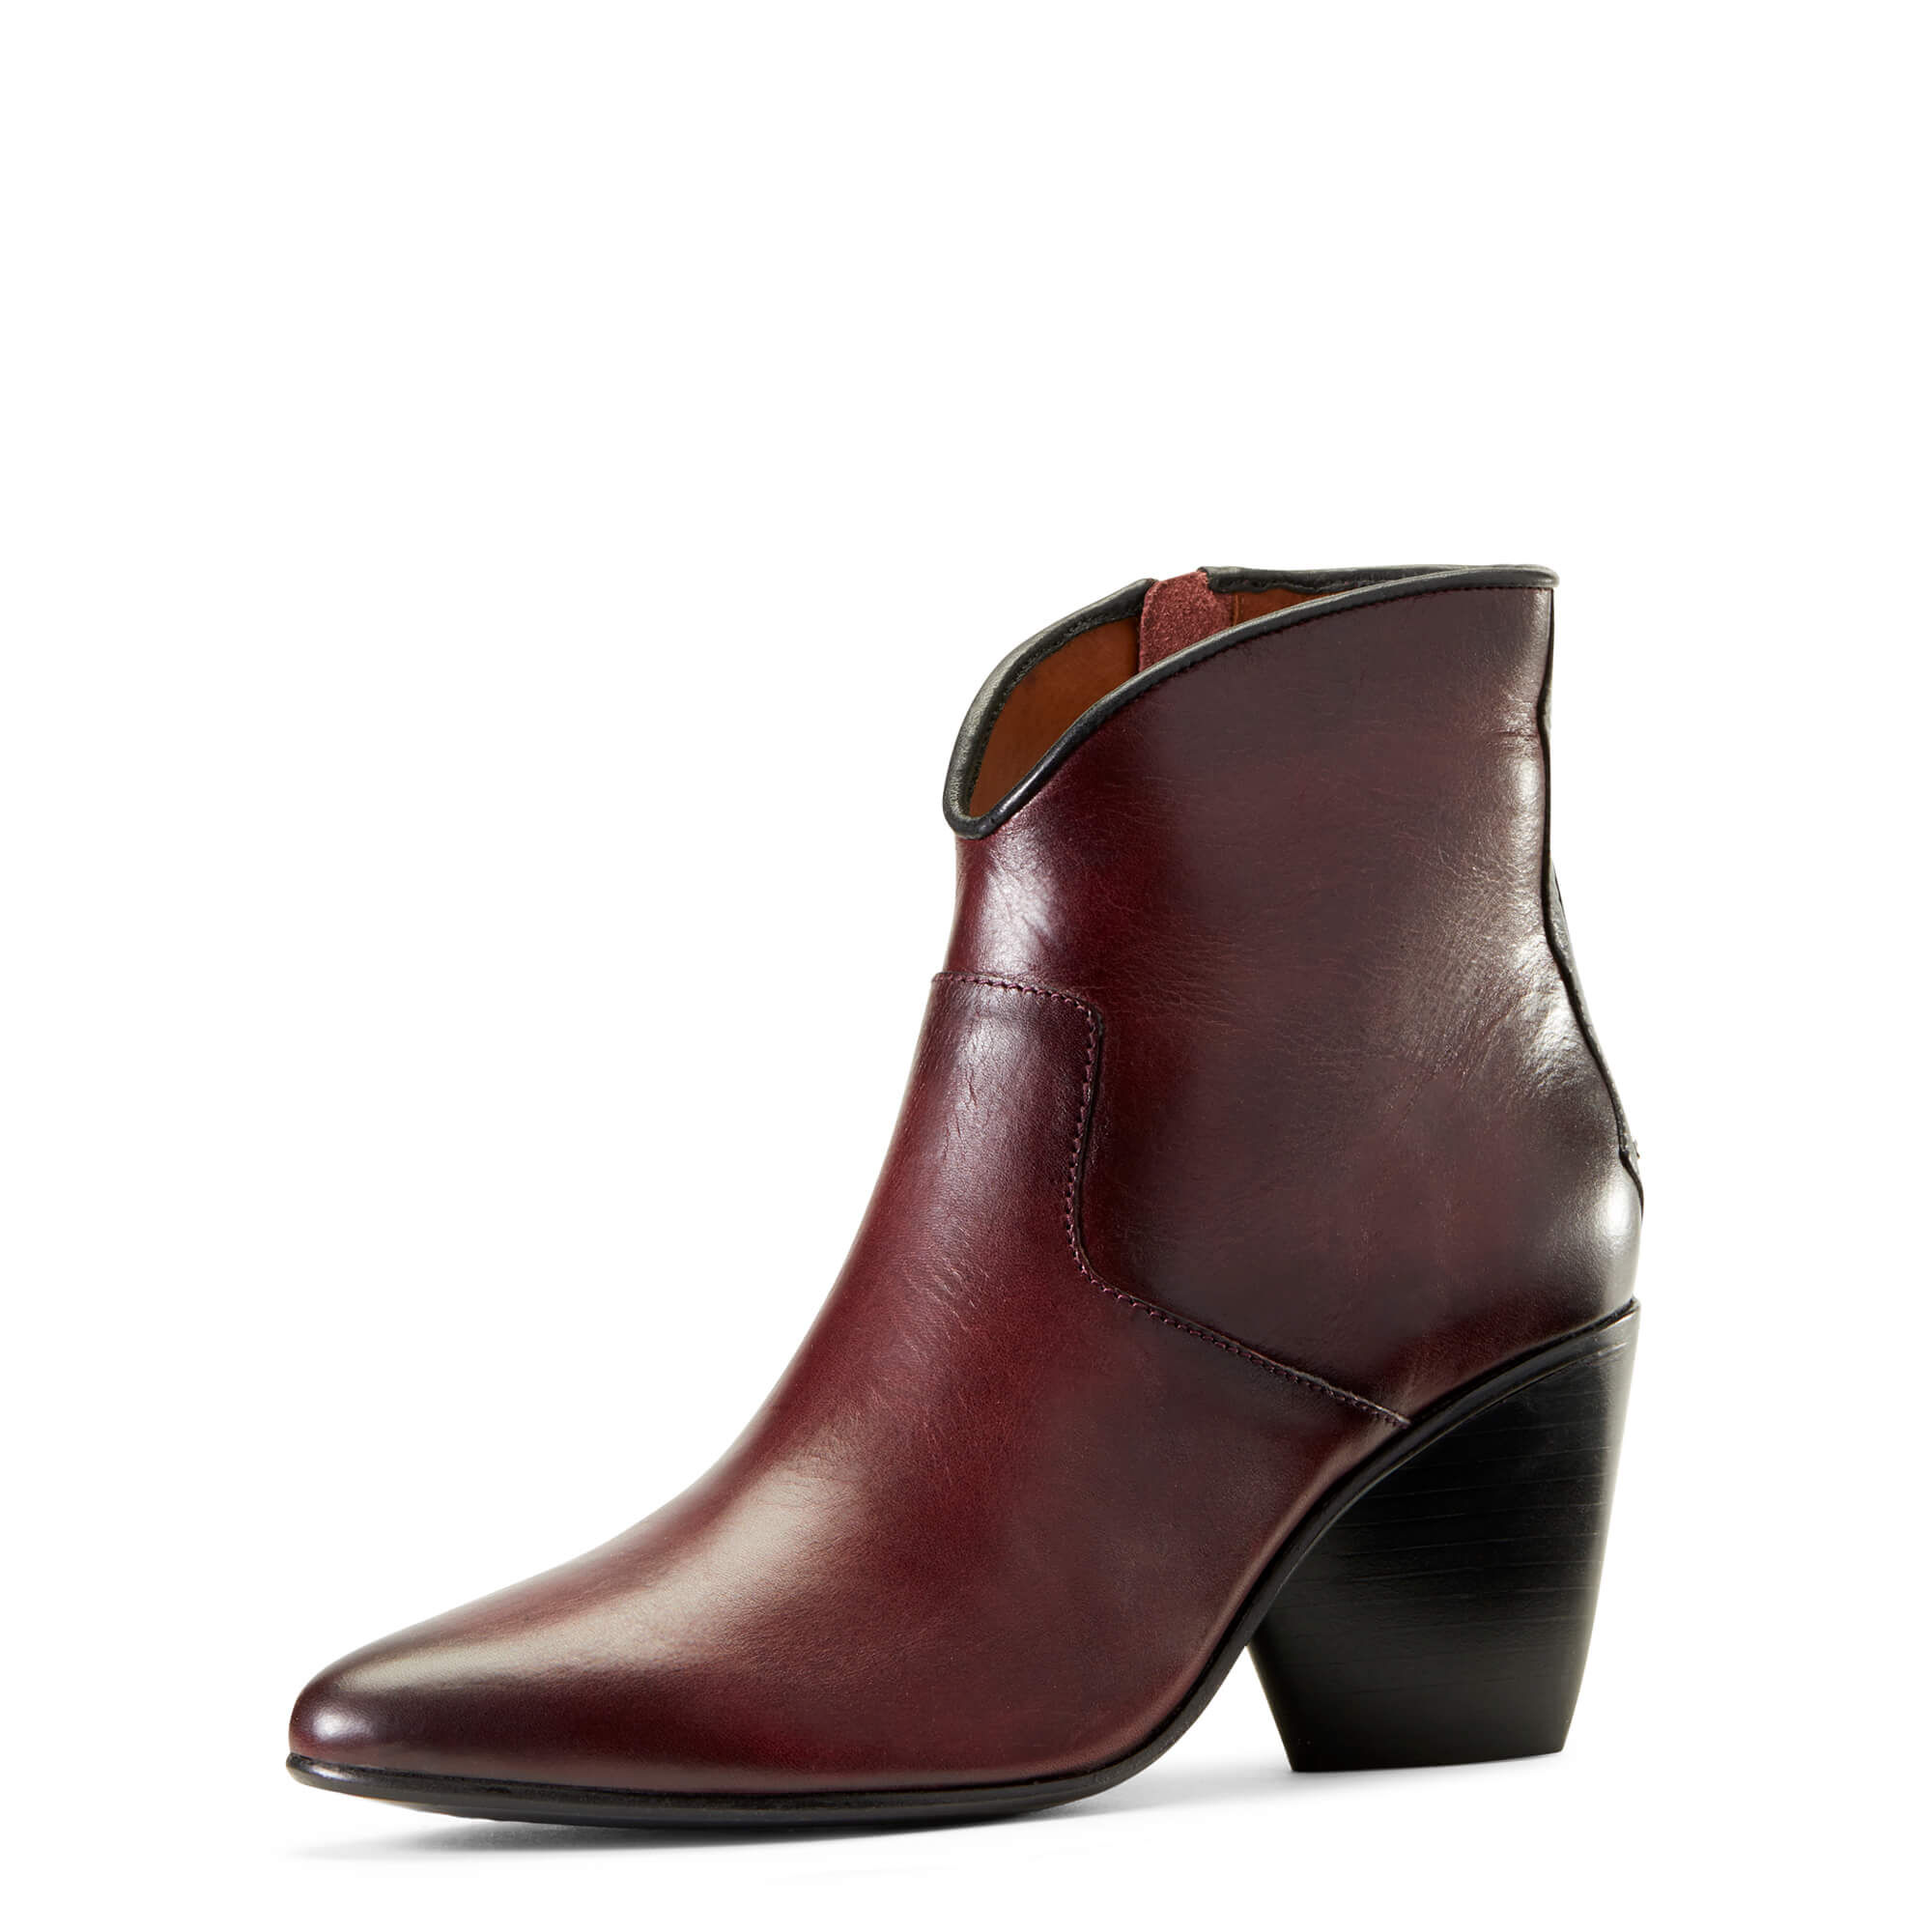 Women's Meadow Brook Ankle Boots in Vino Leather by Ariat Two24